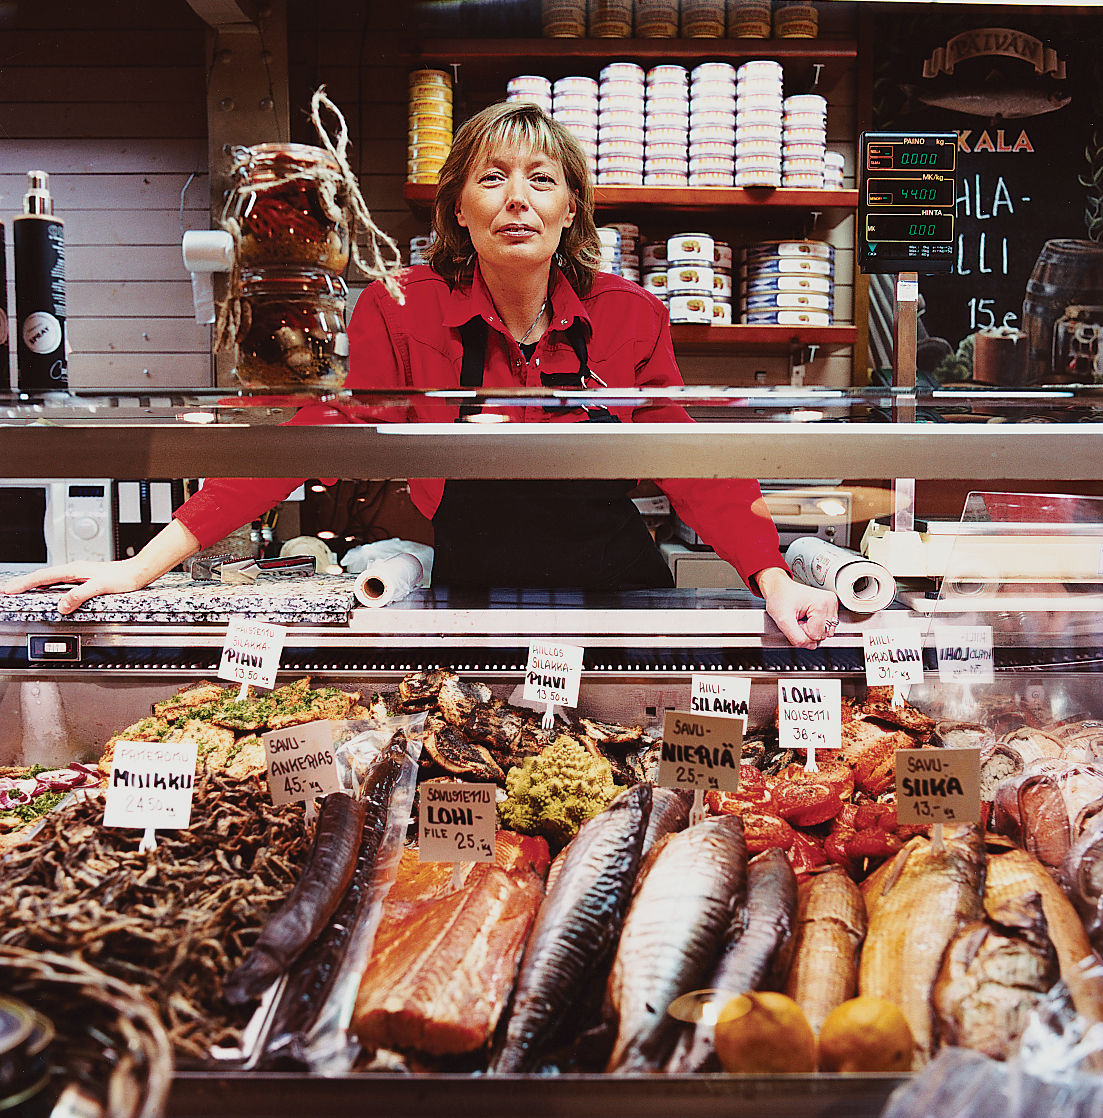 The Kauppahalli marketplace offers an eclectic selection of local foods and personalities.